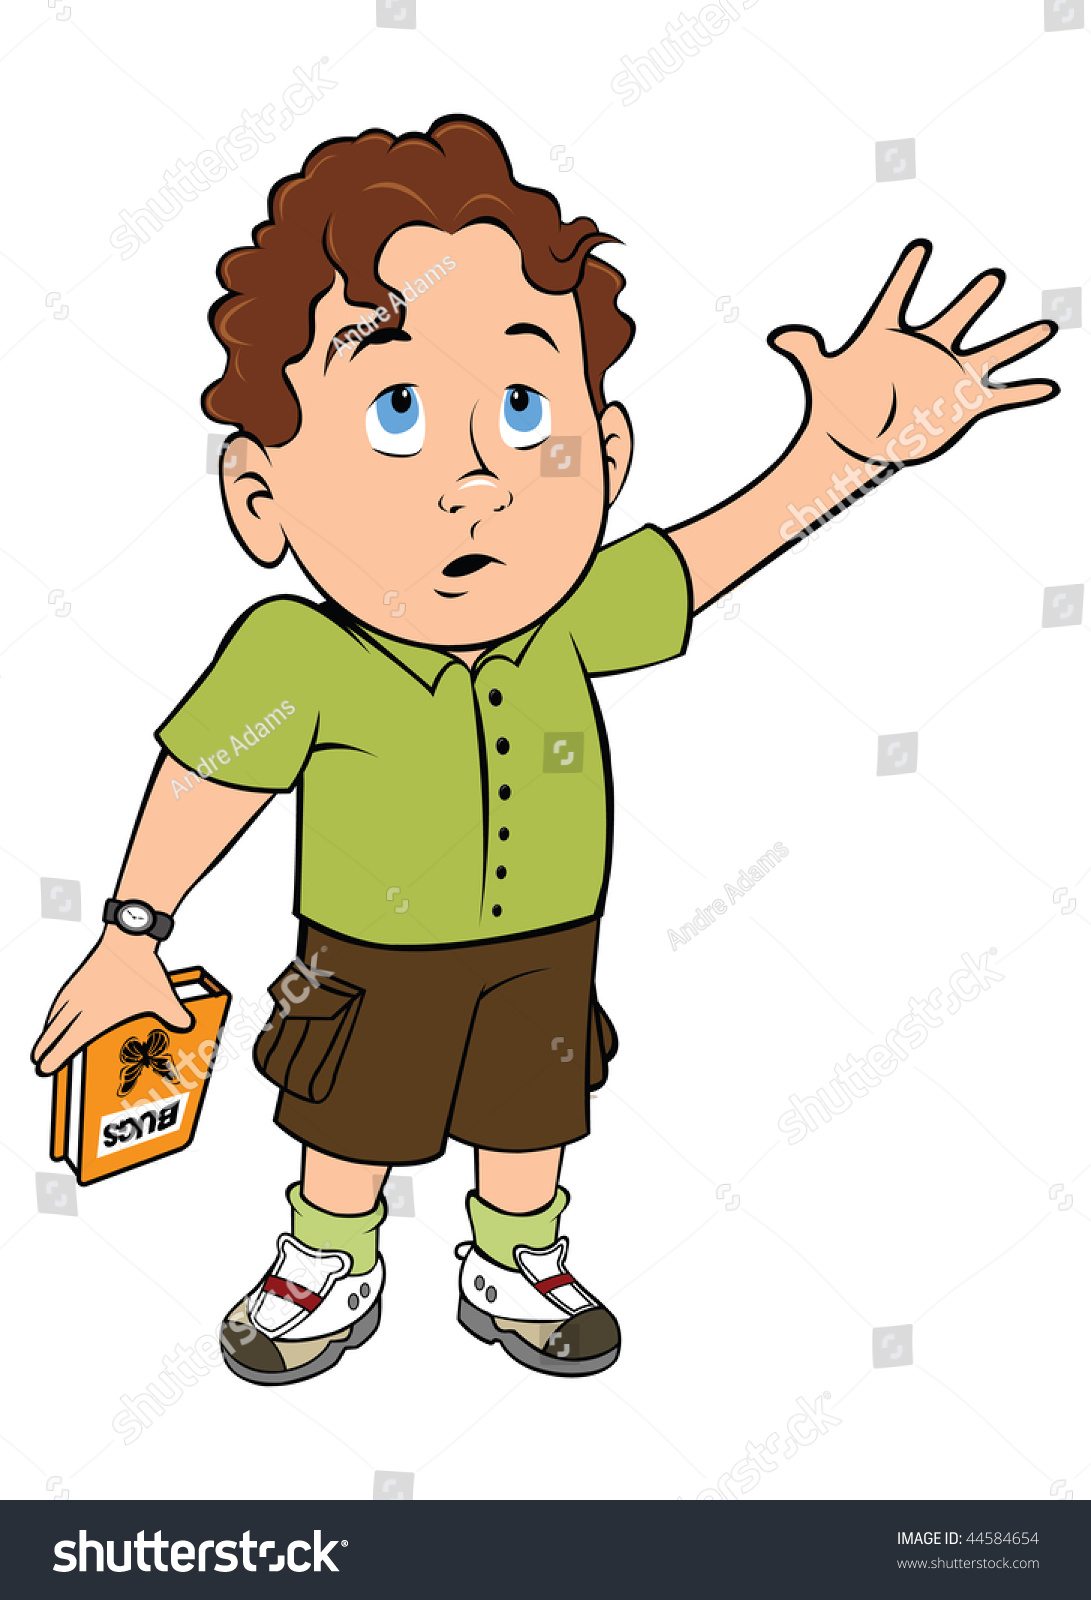 Clipart Boy Asking For Help & Free Clip Art Images #14217.